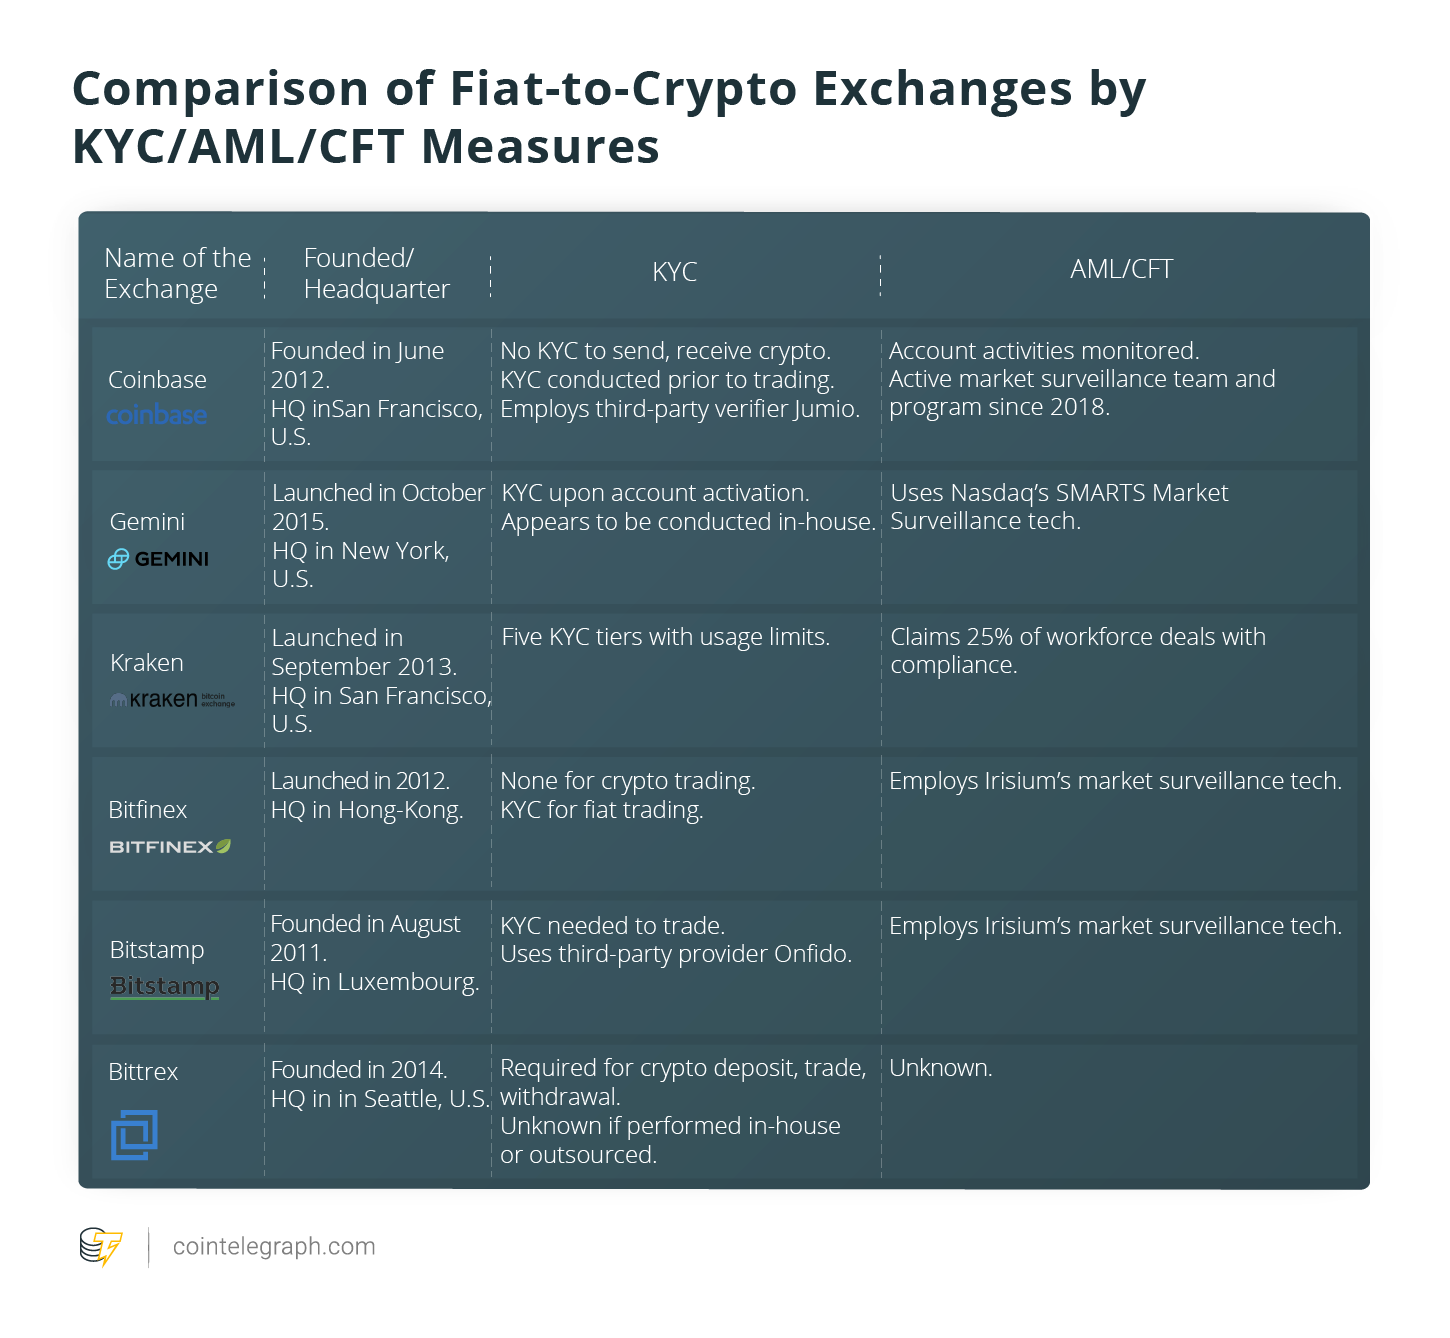 Fiat-to-crypto exchanges